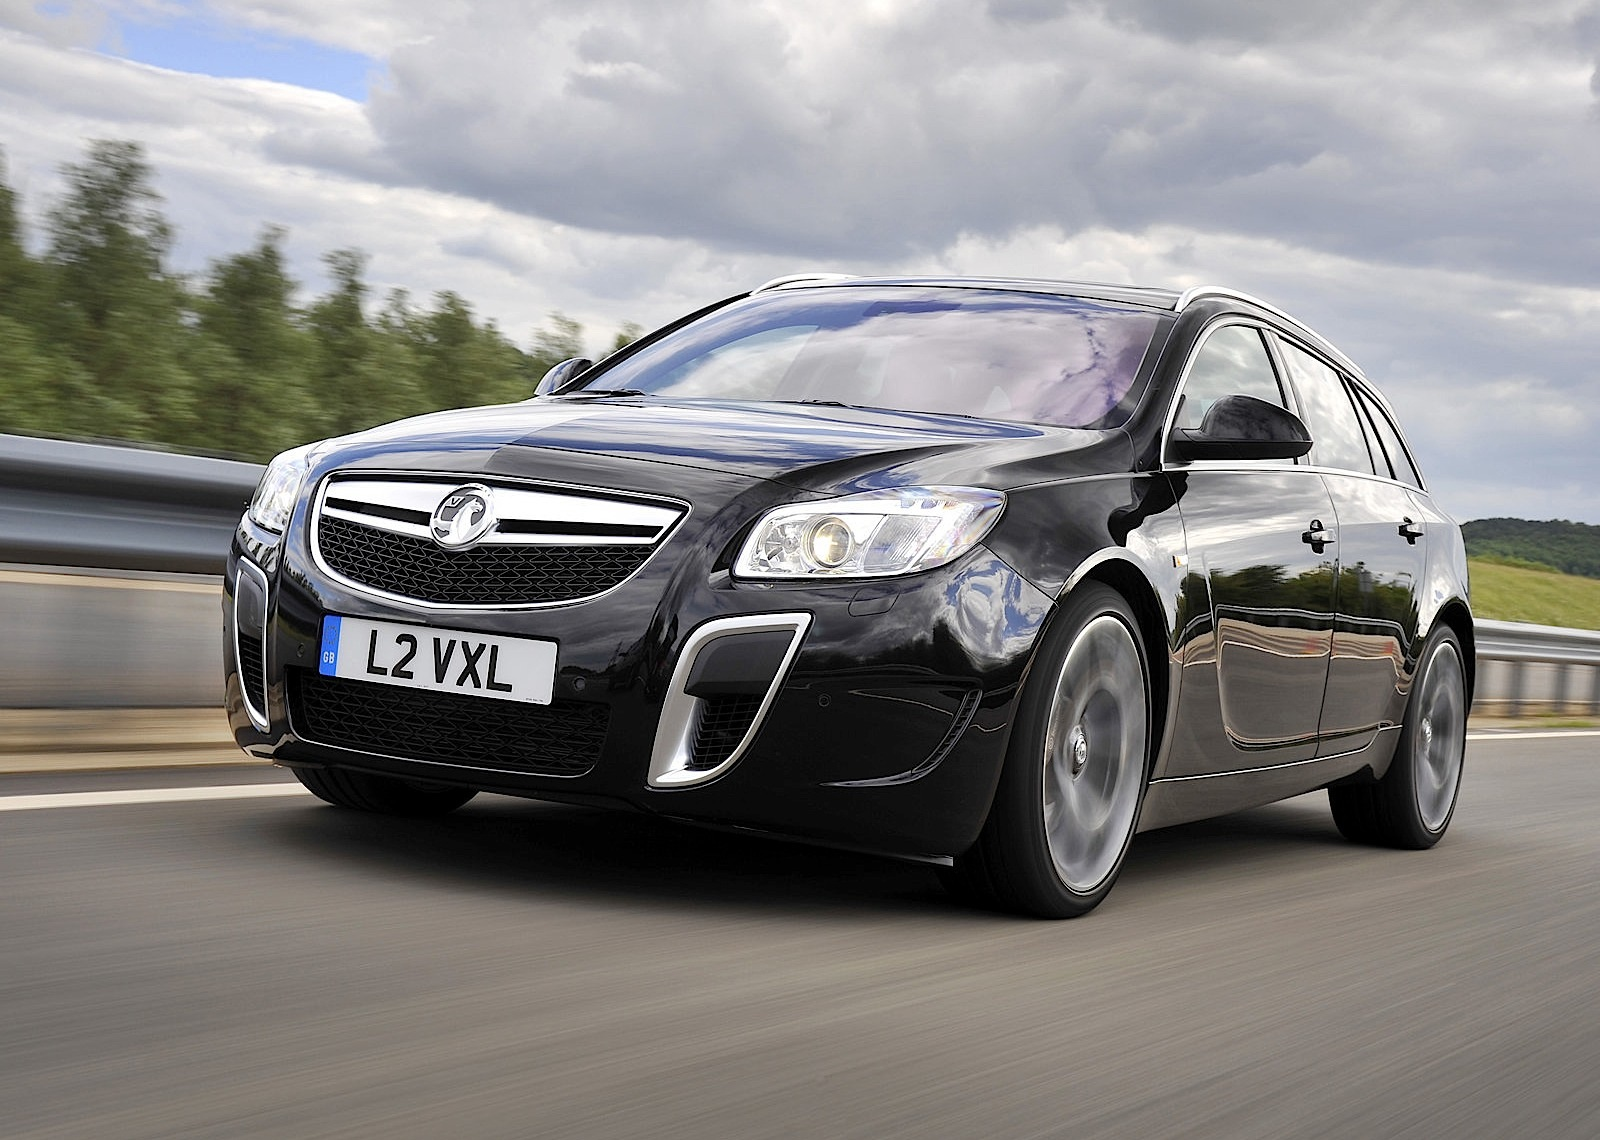 Vauxhall Insignia Vxr furthermore Car Photo together with Opel Corsa Opc Nurburgring Edition  es Home For Big Photoshoot together with X as well Opelvectragtsopc. on insignia vxr gallery image